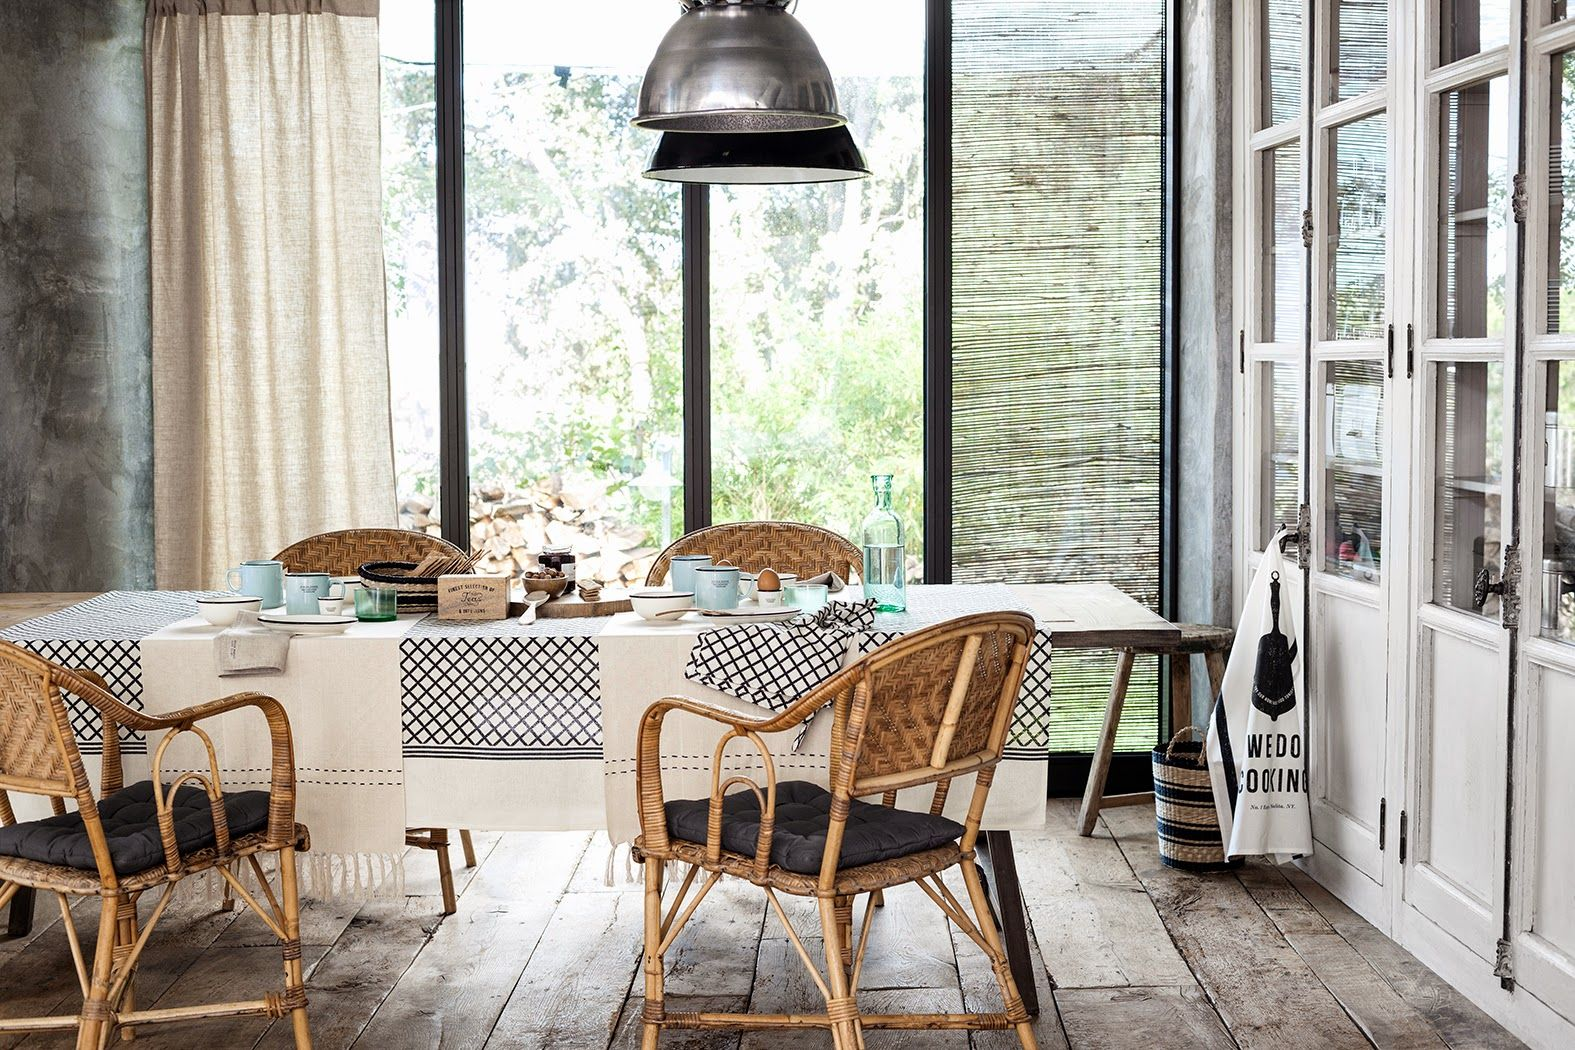 The H & M Home home collection is prepared to welcome spring | Home H Amp M Home Design on michael kors home, armani home, chanel home, next home, swarovski home, walmart home, h is for home, gucci home, sony home, lane crawford home, asda home,